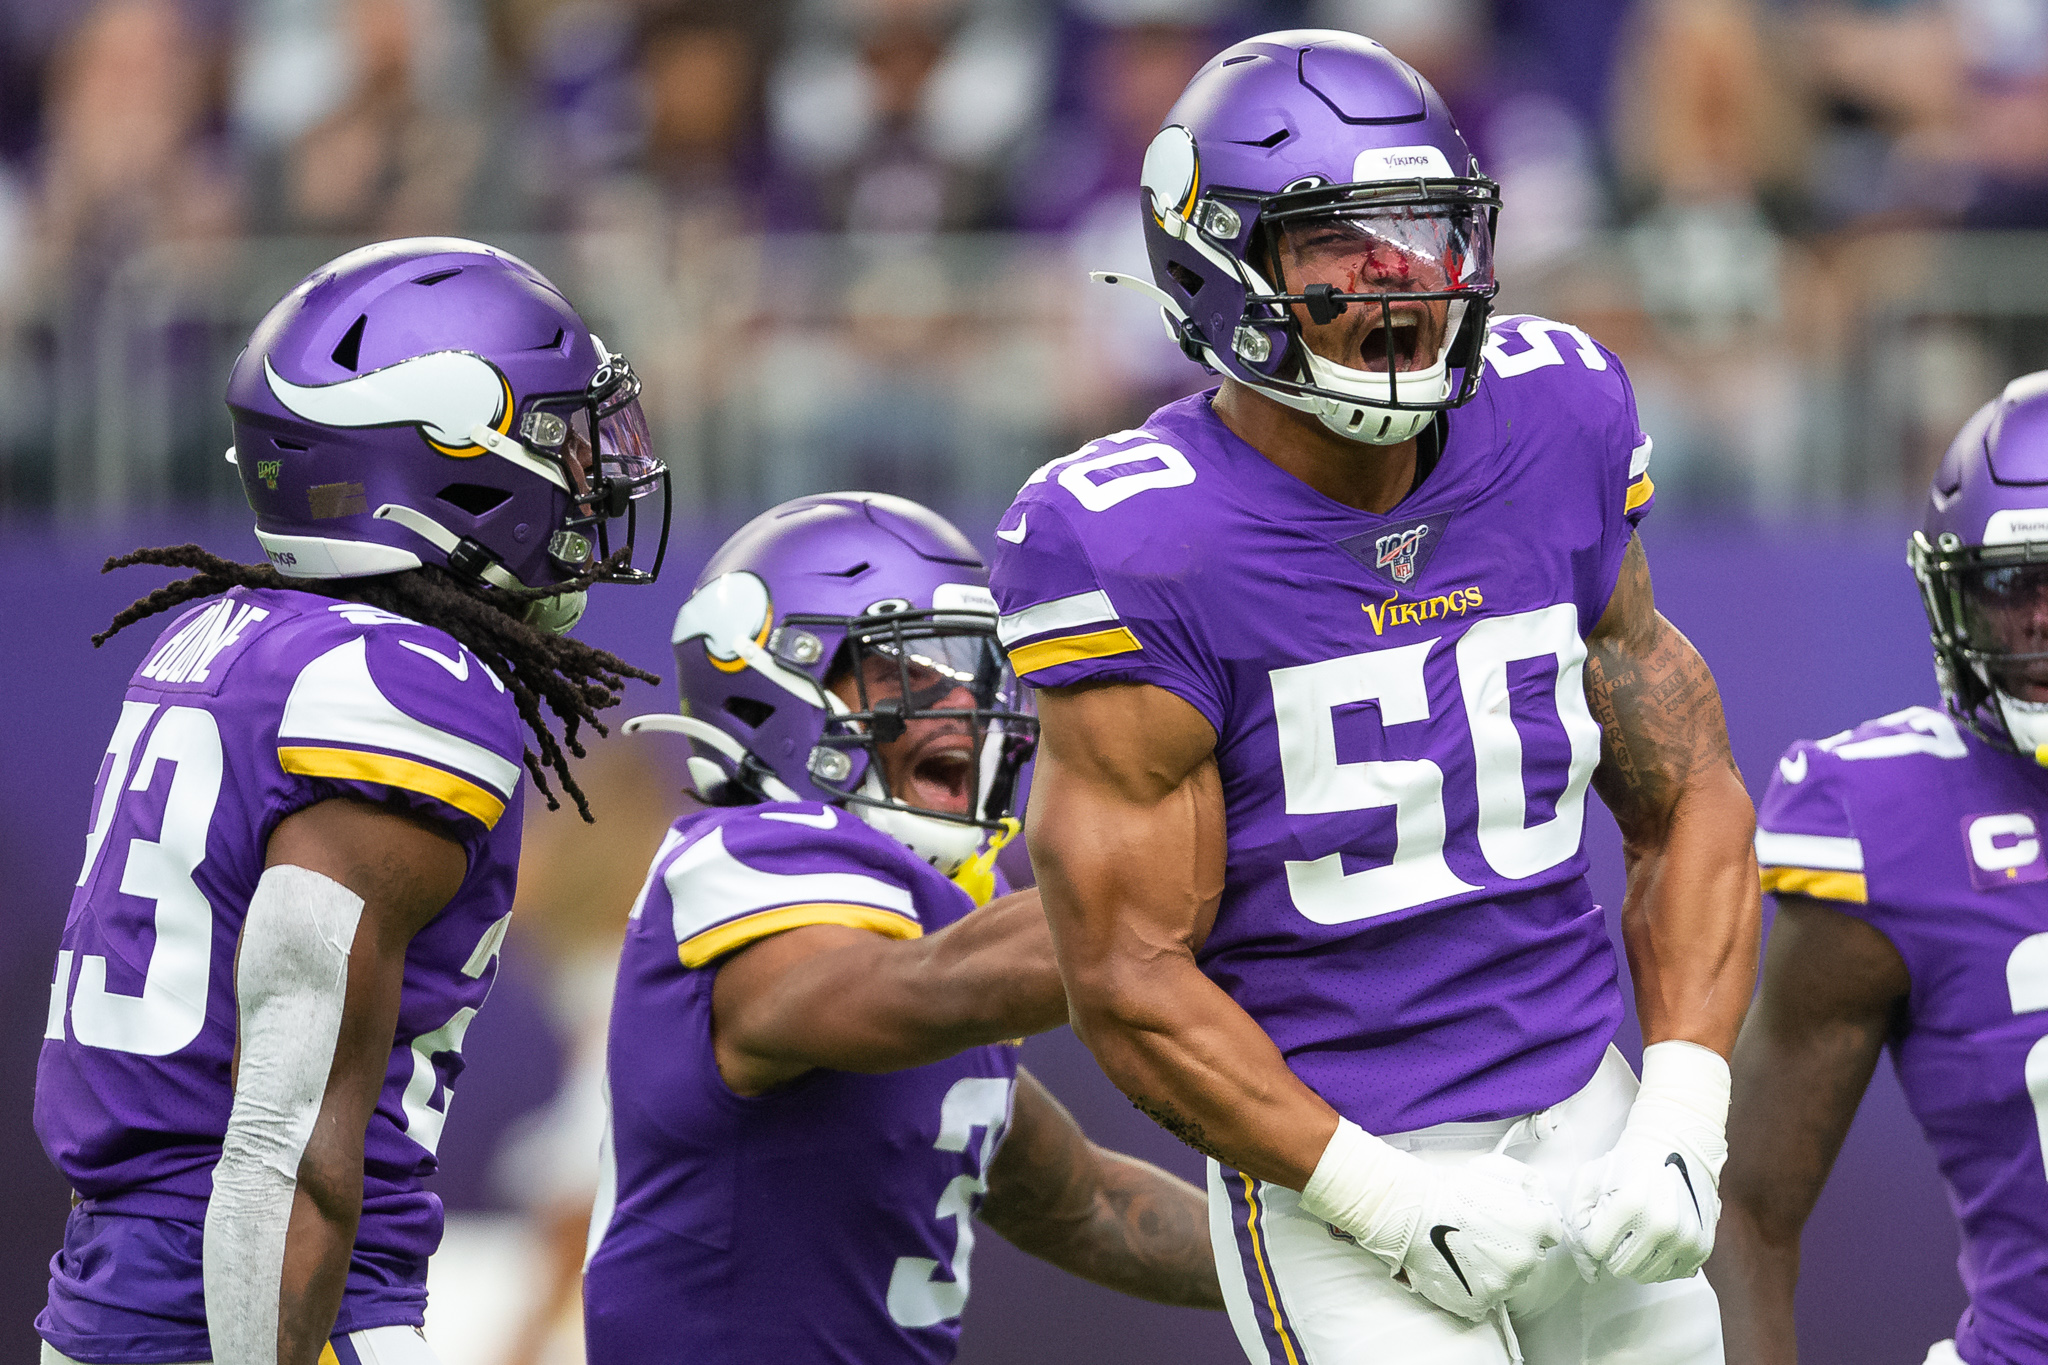 Sep 8, 2019; Minneapolis, MN, USA; Minnesota Vikings linebacker Eric Wilson (50) reacts after blocking a punt against the Atlanta Falcons during the first quarter at U.S. Bank Stadium. Mandatory Credit: Harrison Barden-USA TODAY Sports